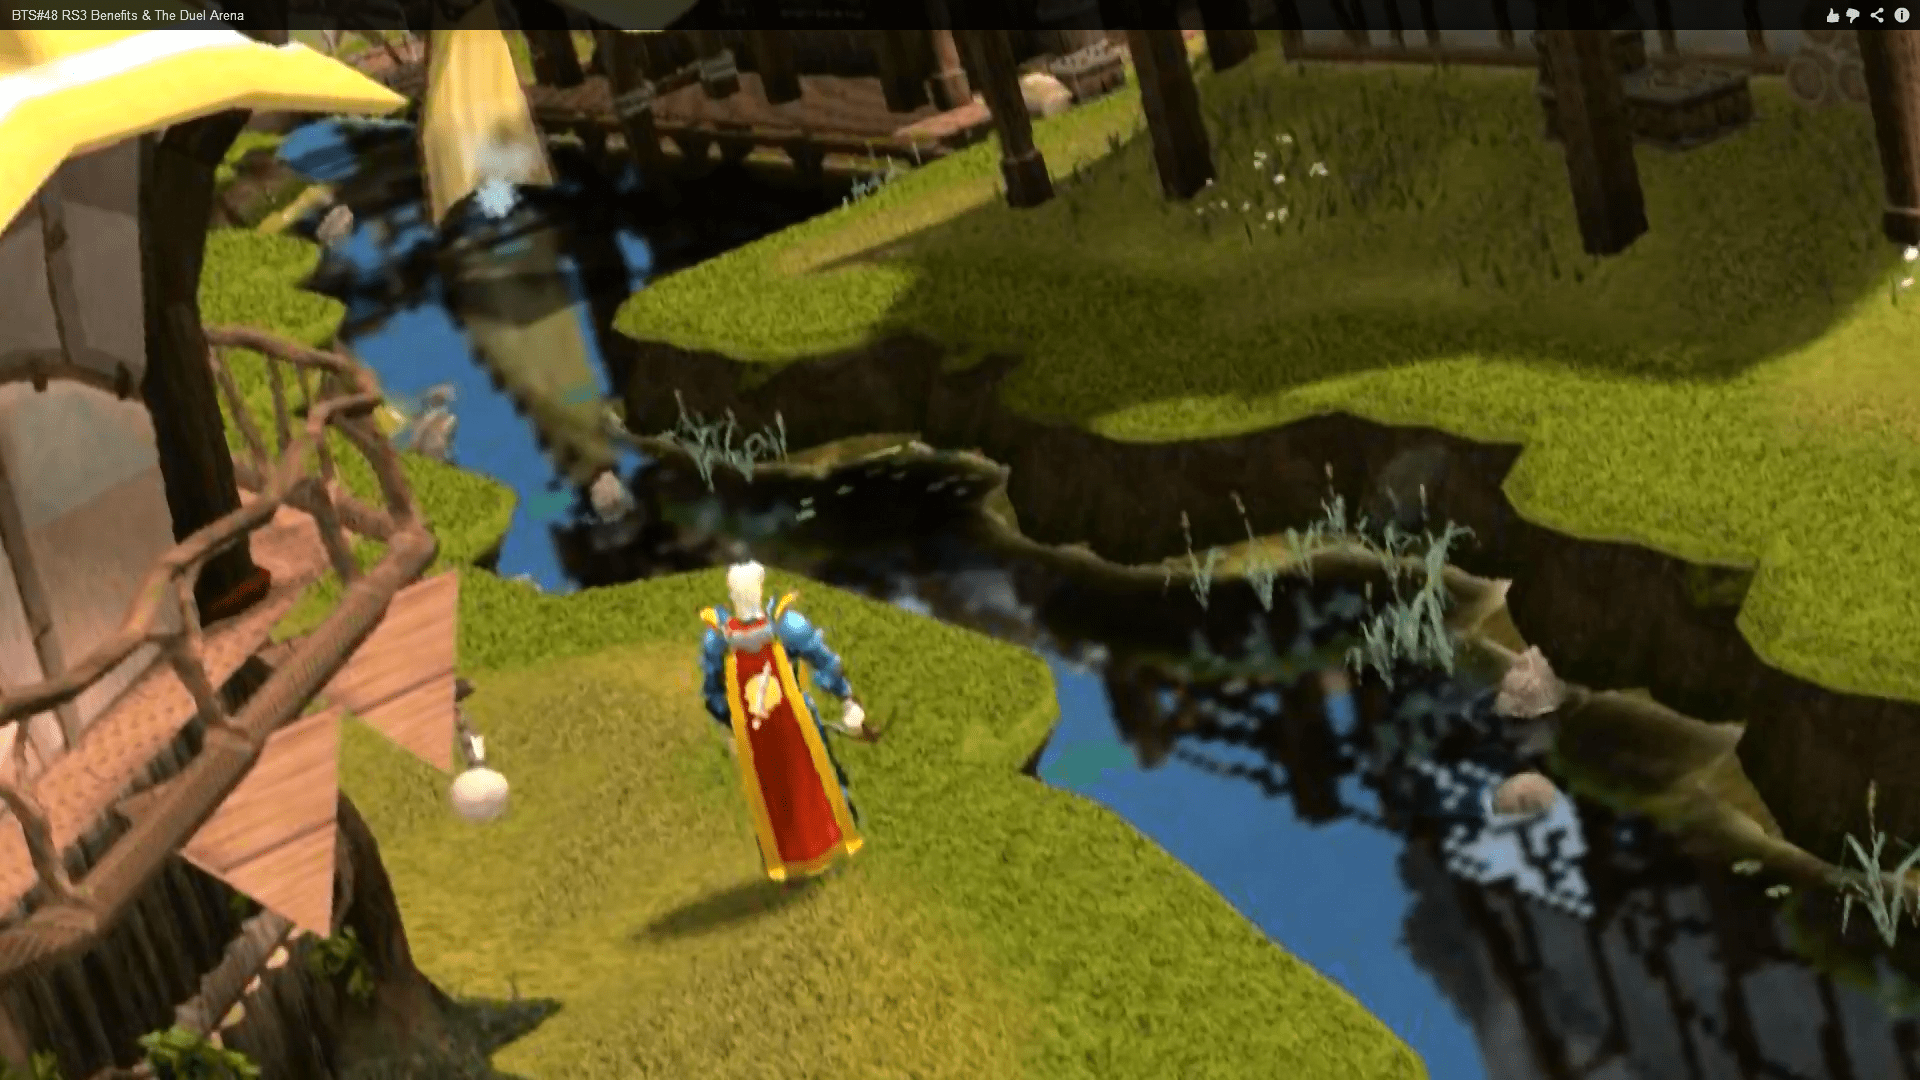 Hd Wallpapers Best Collection Runescape Wallpapers High Quality Download Free